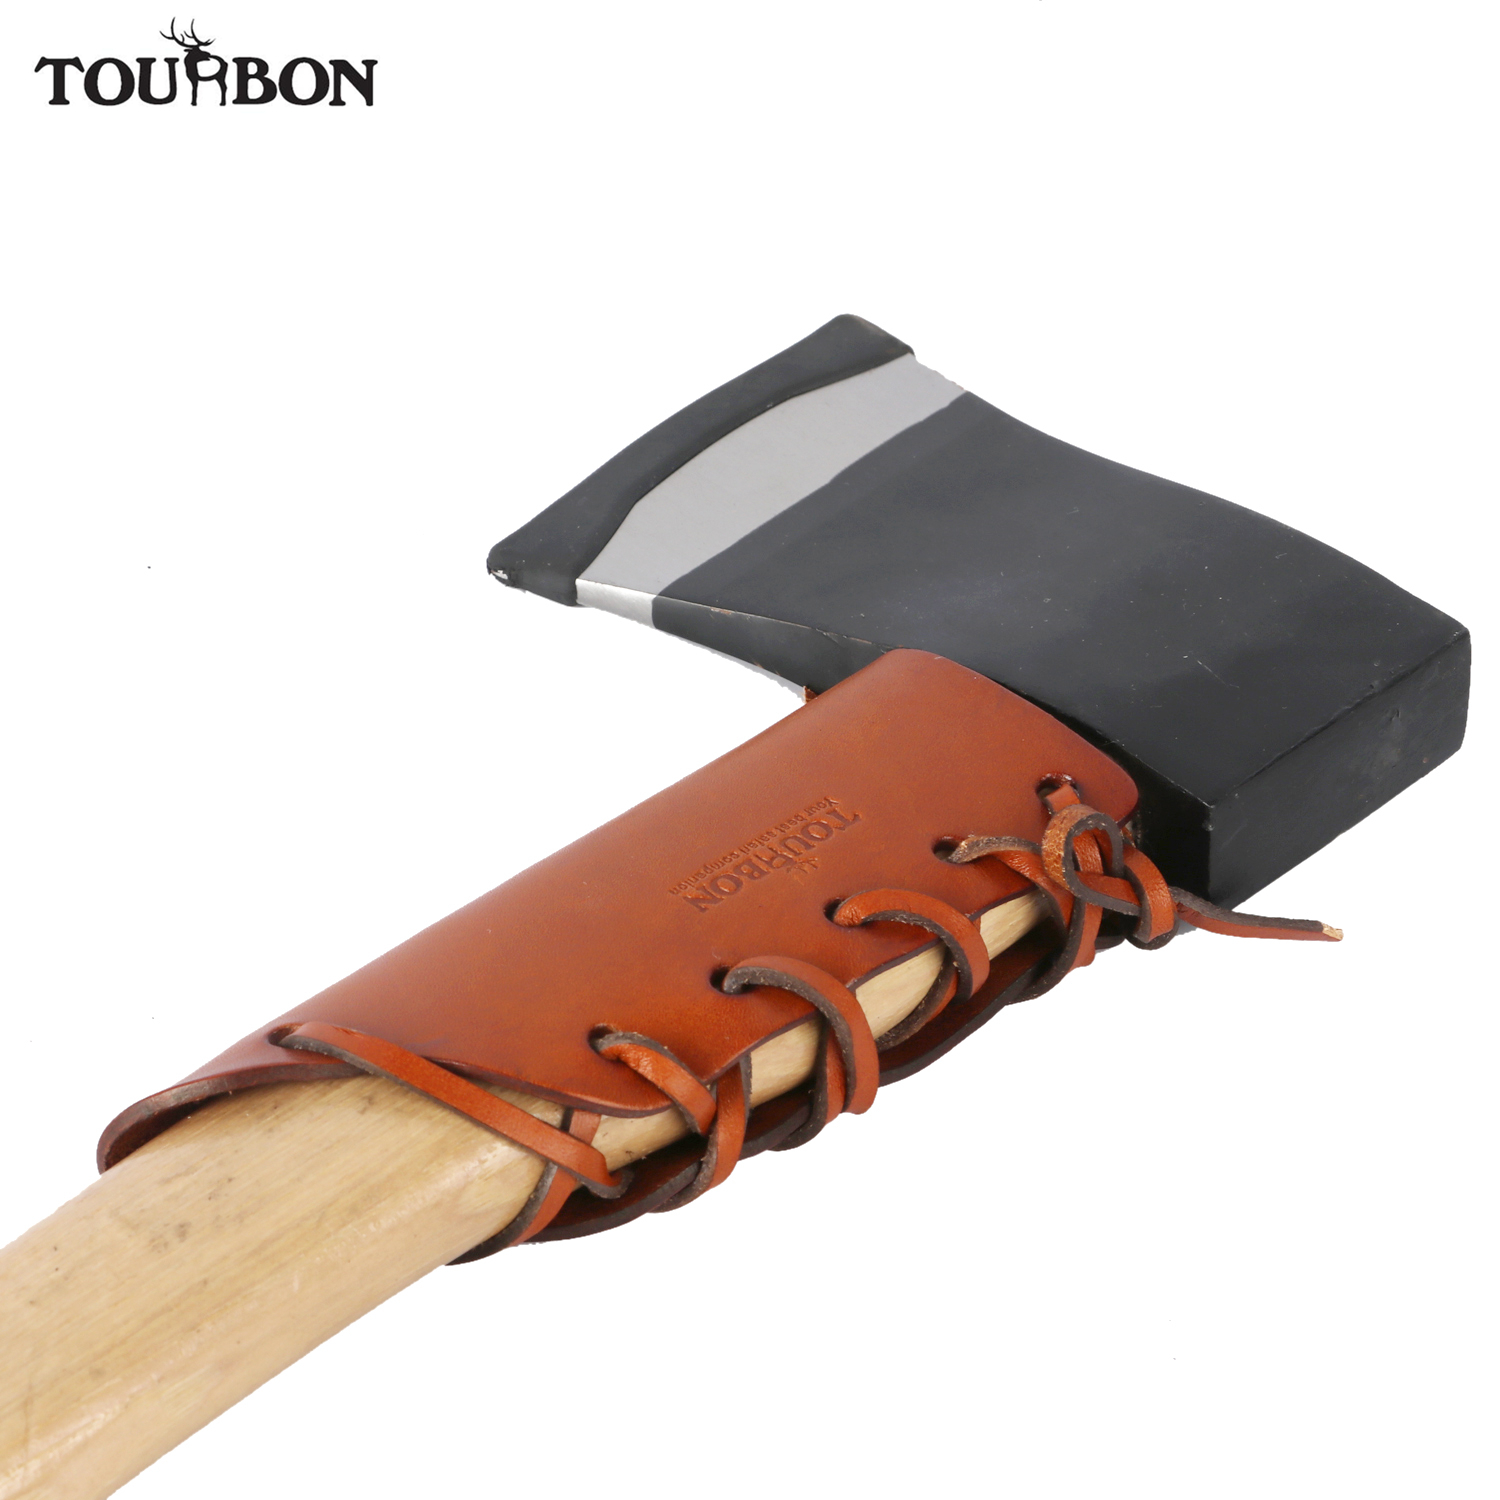 Tourbon Hunting Premium Genuine Leather Ax Collar Guard Sheath Hatchet Carrier Axe Head Cover Pouch